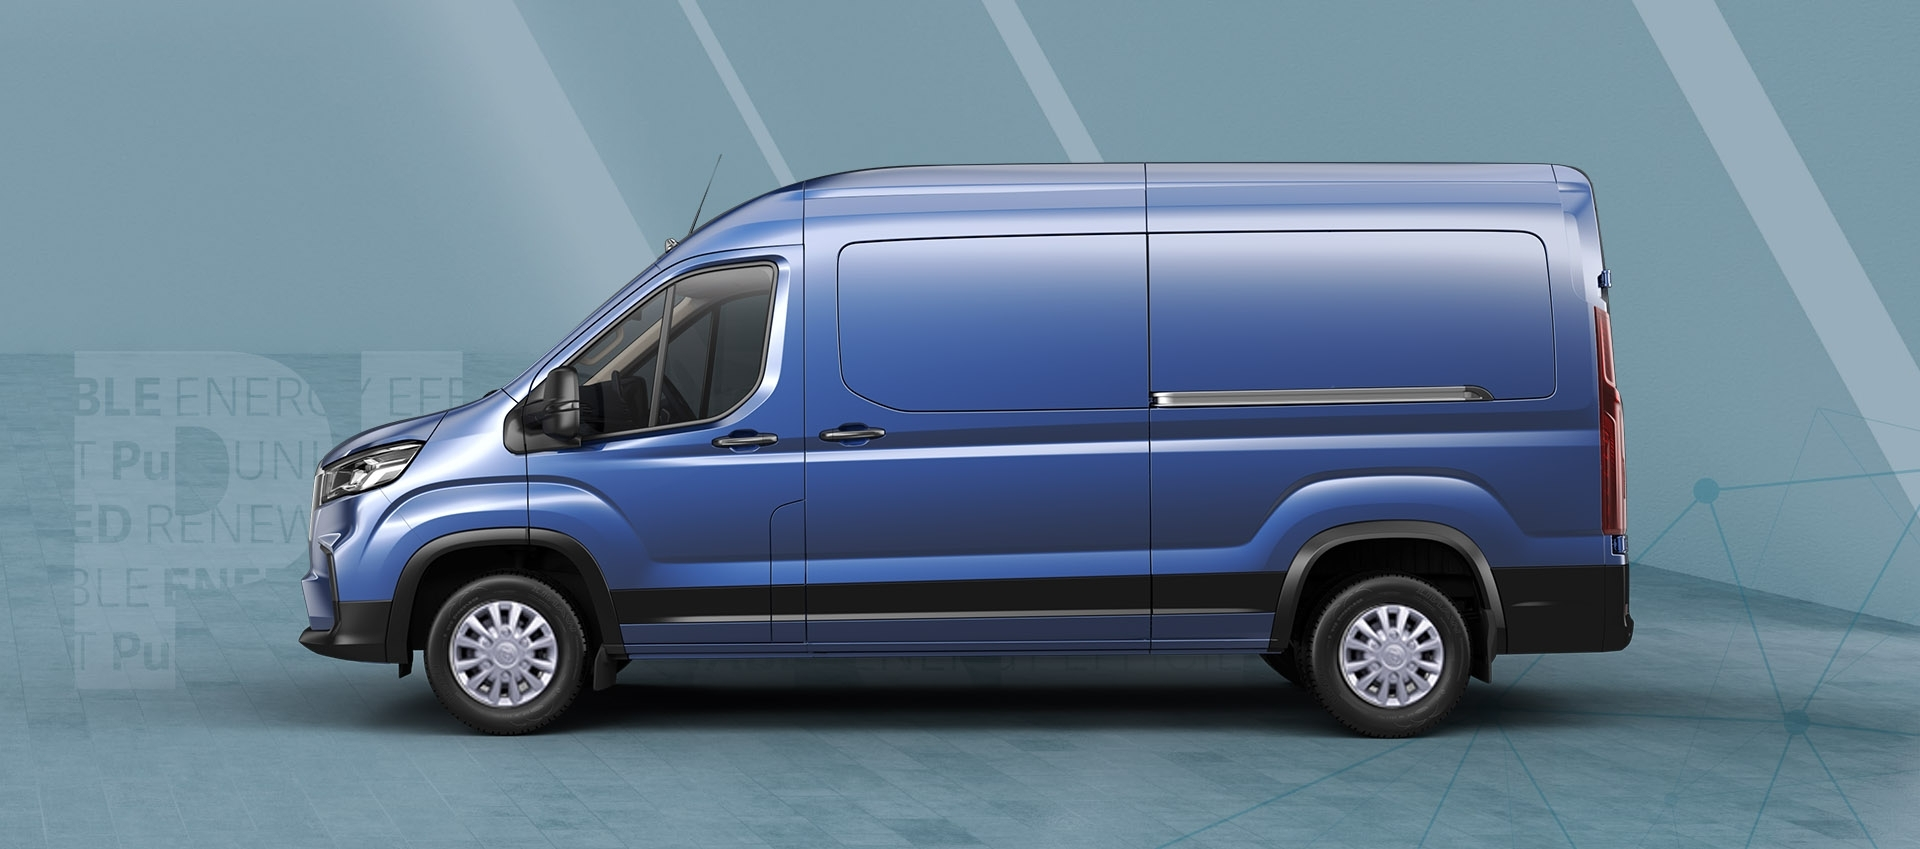 Maxus Deliver 9 - Side view